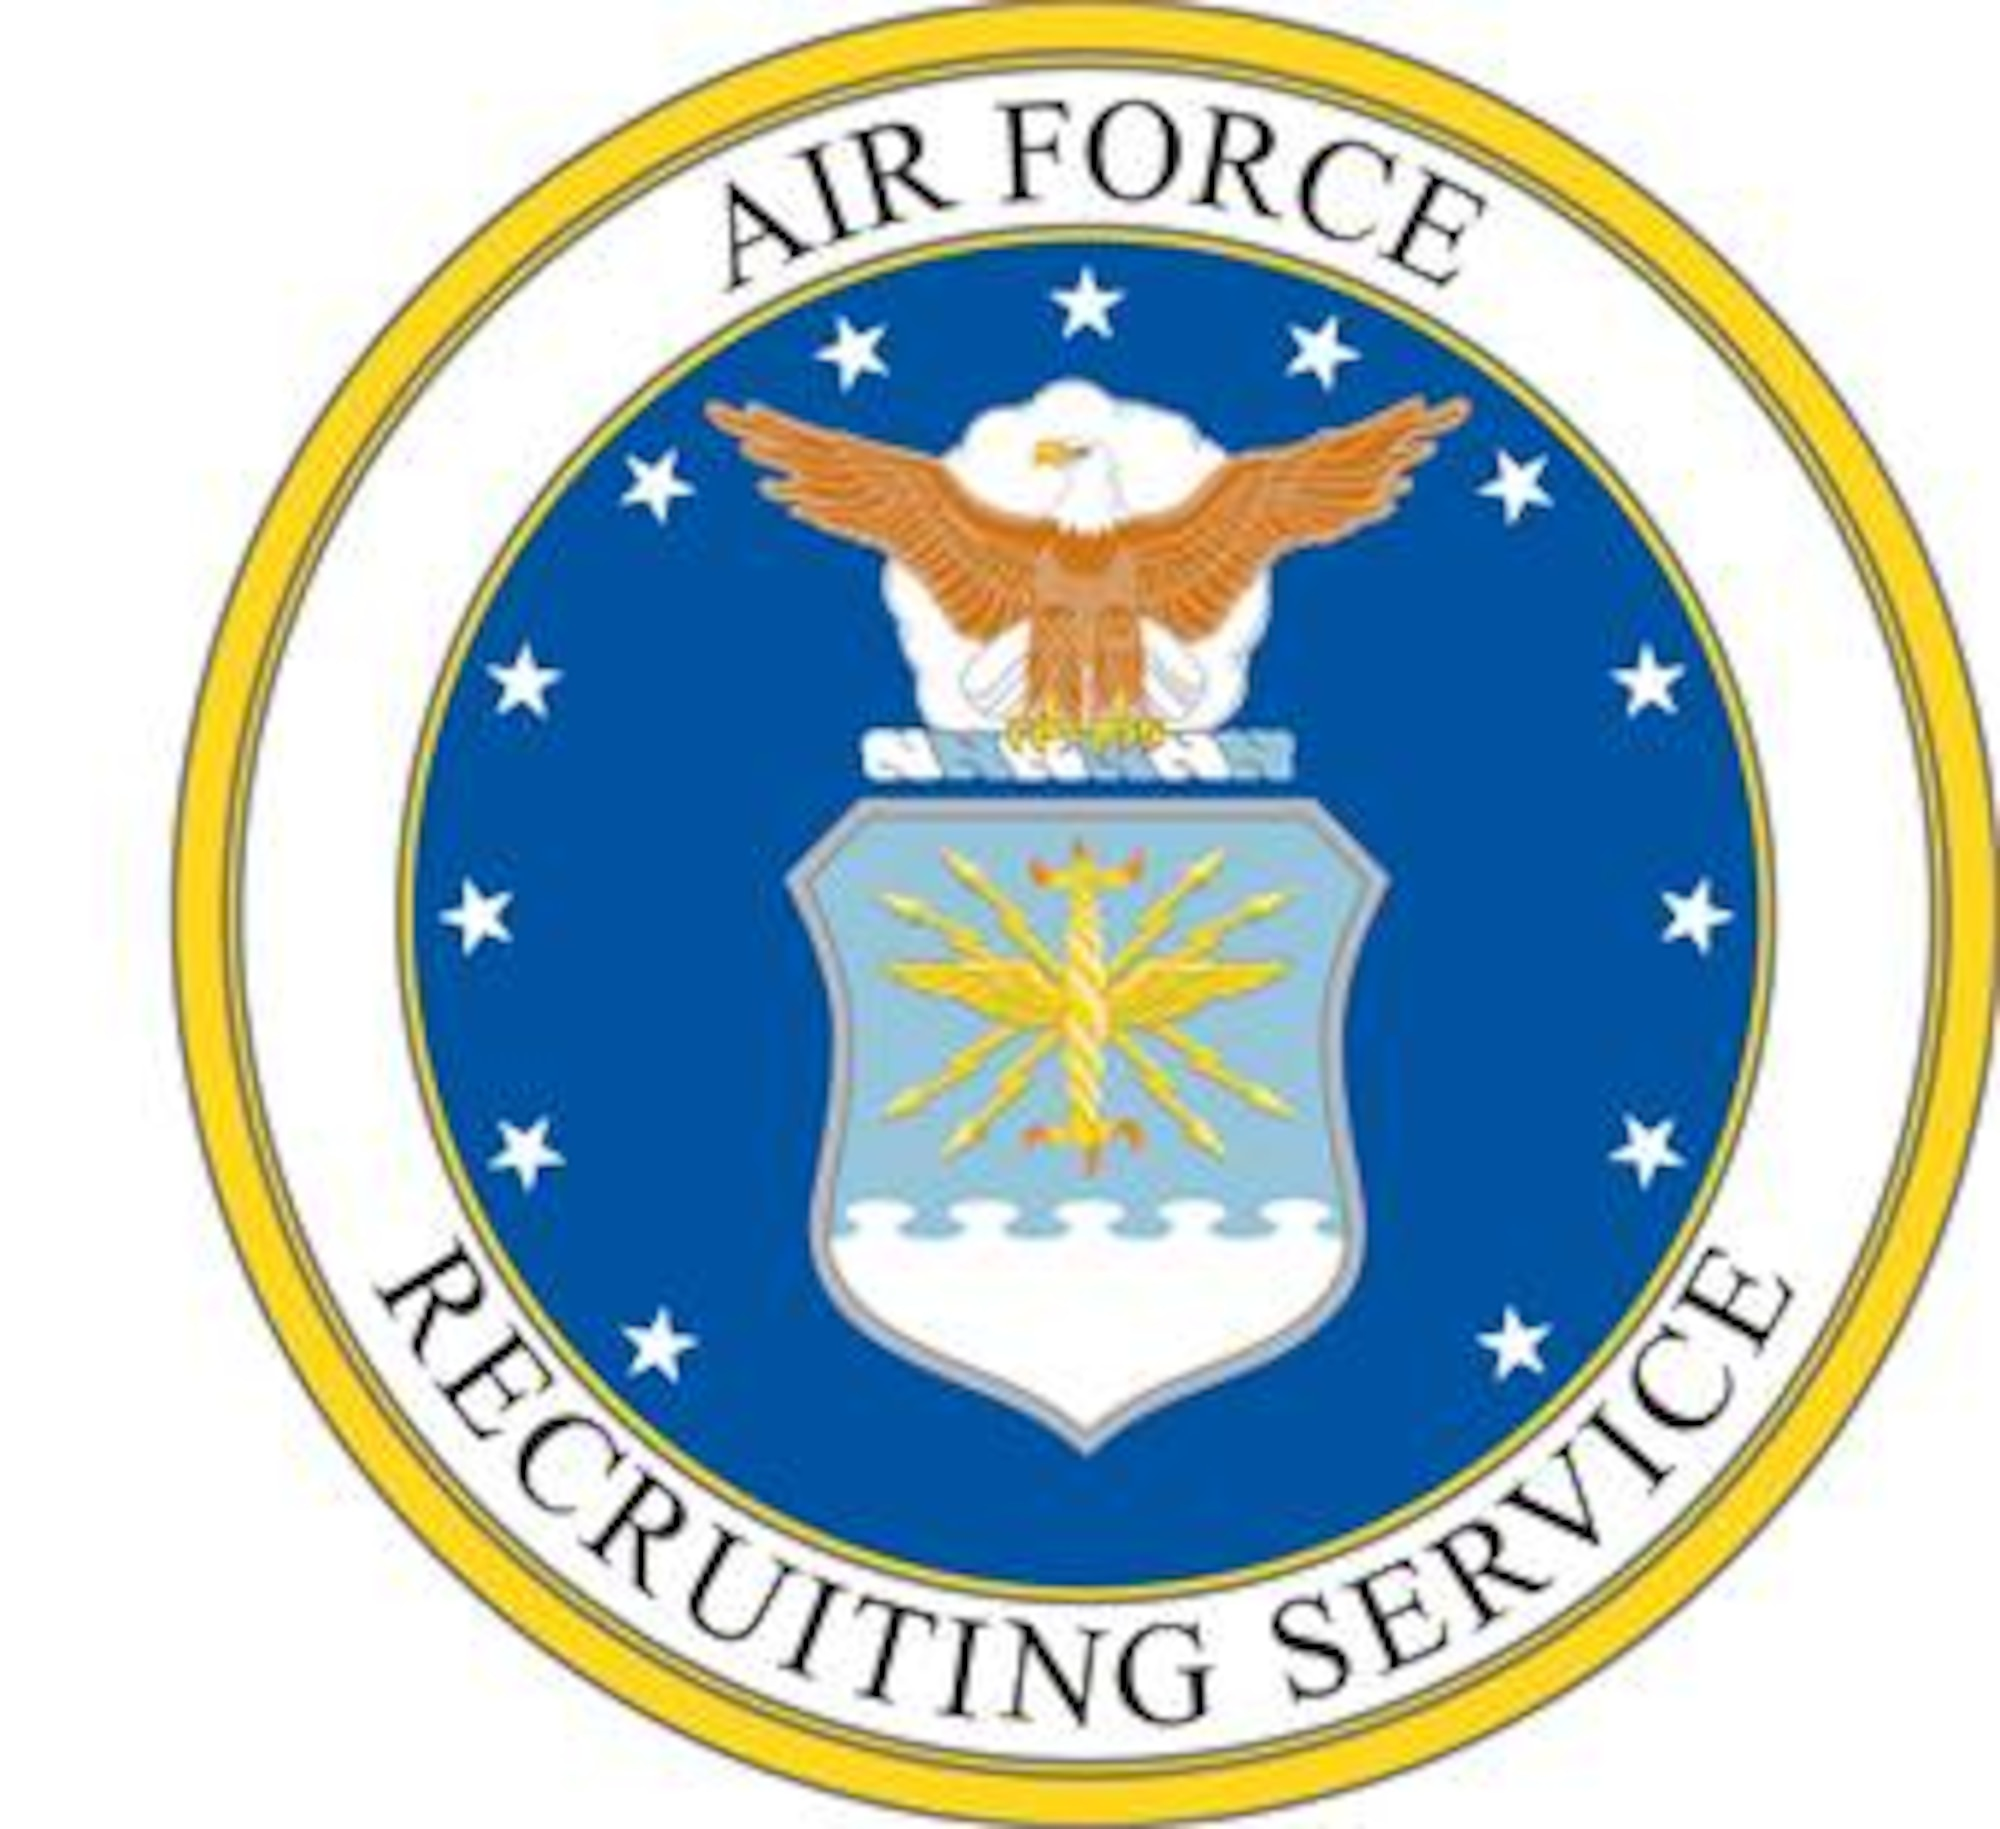 Air Force Recruiting Service (AFRS) shield (color).  Image is 8x7.57 inches @ 300 ppi.   Department of Defense and Military Seals are protected by law from unauthorized use. These seals may NOT be used for non-official purposes. For additional information contact the appropriate proponent.